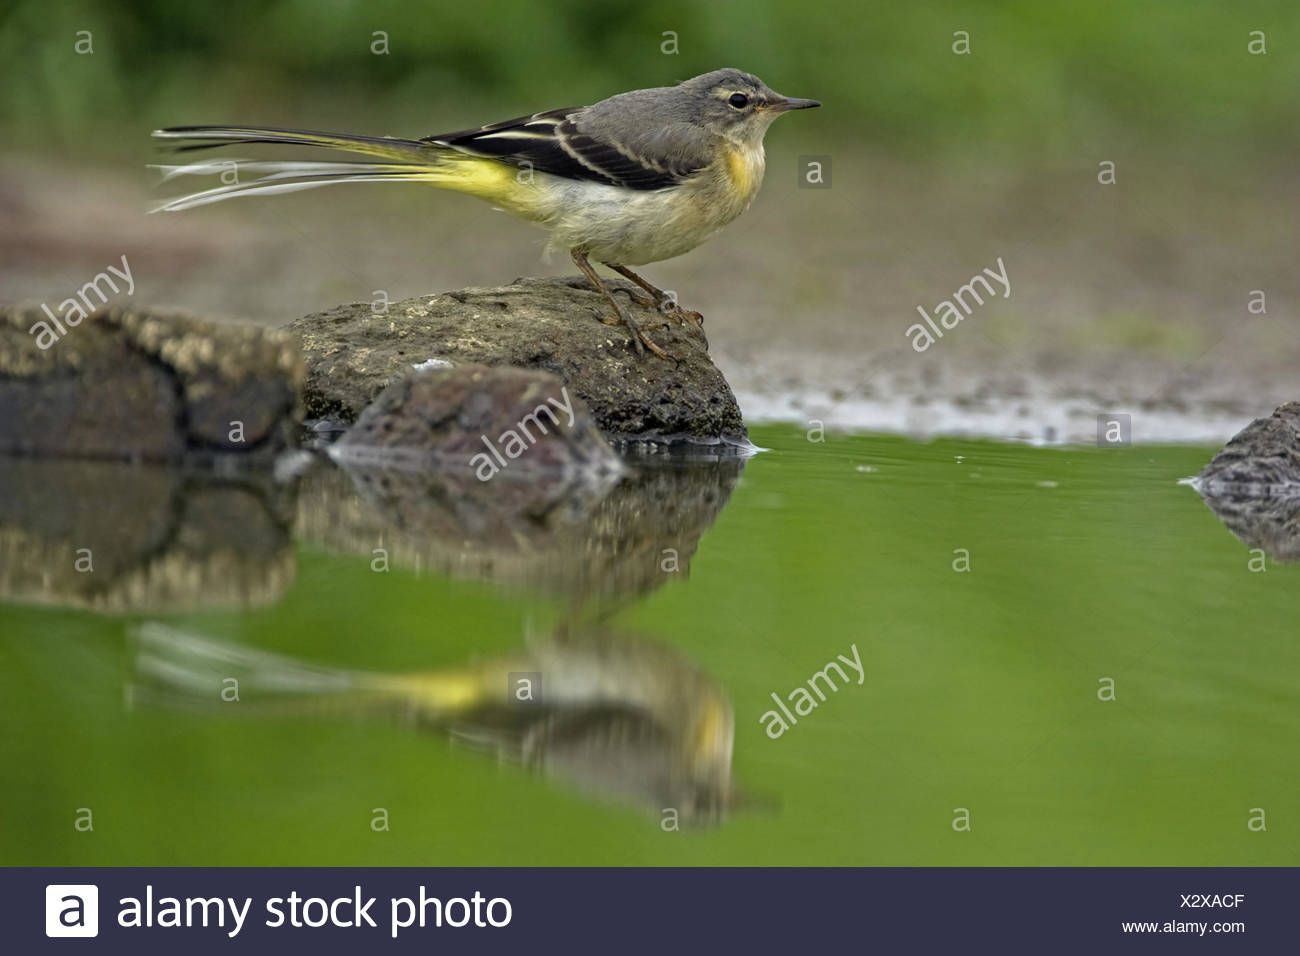 grey wagtail (Motacilla cinerea), on a stone in a pond, Belgium - Stock Image